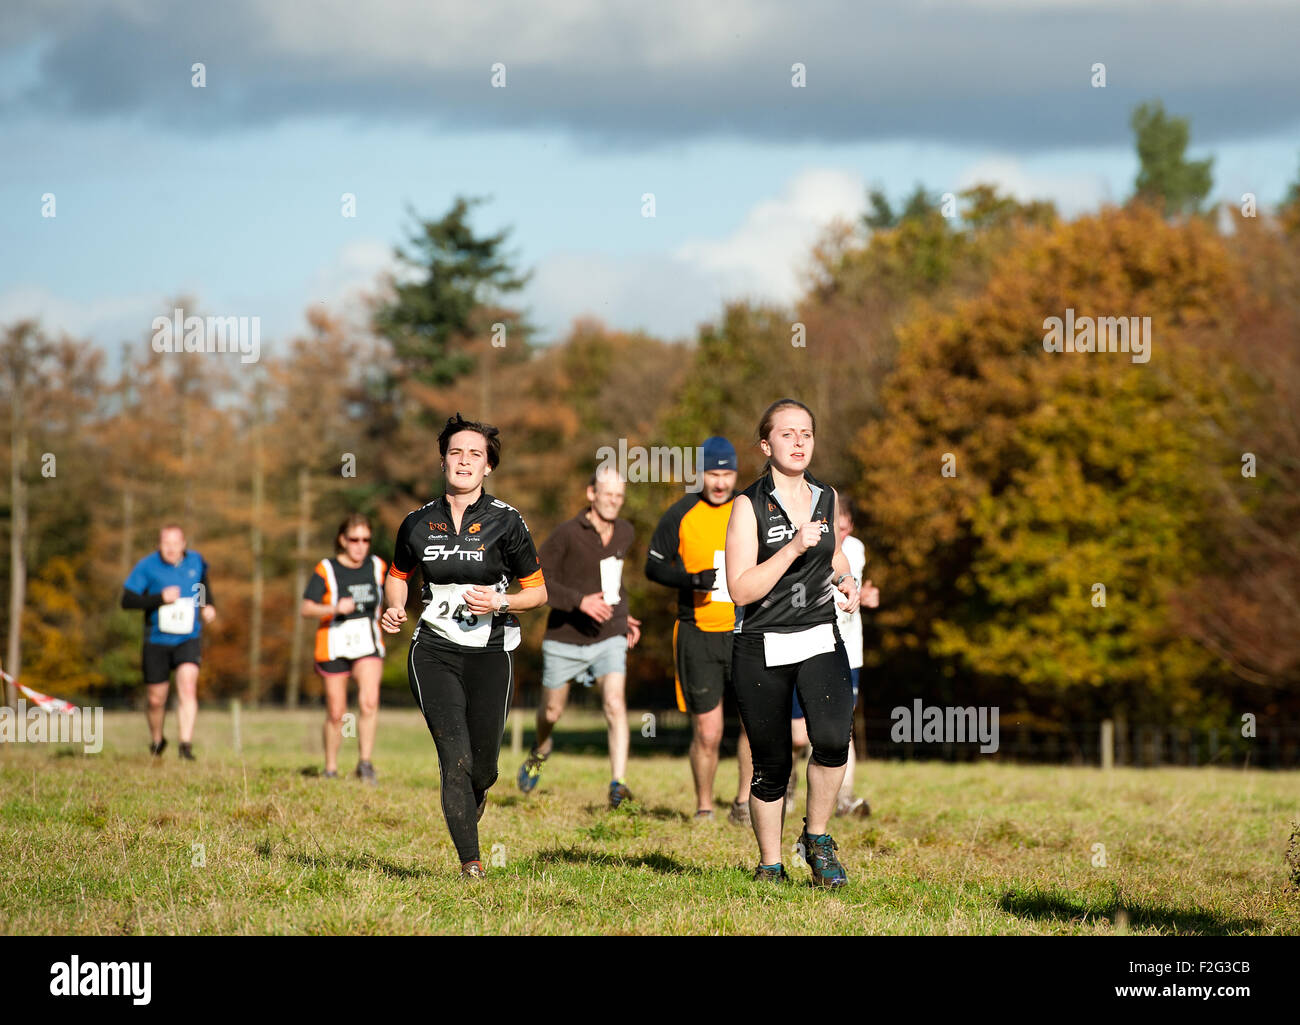 Cross Country Runners crossing a field in the Autumn Sunshine - Stock Image